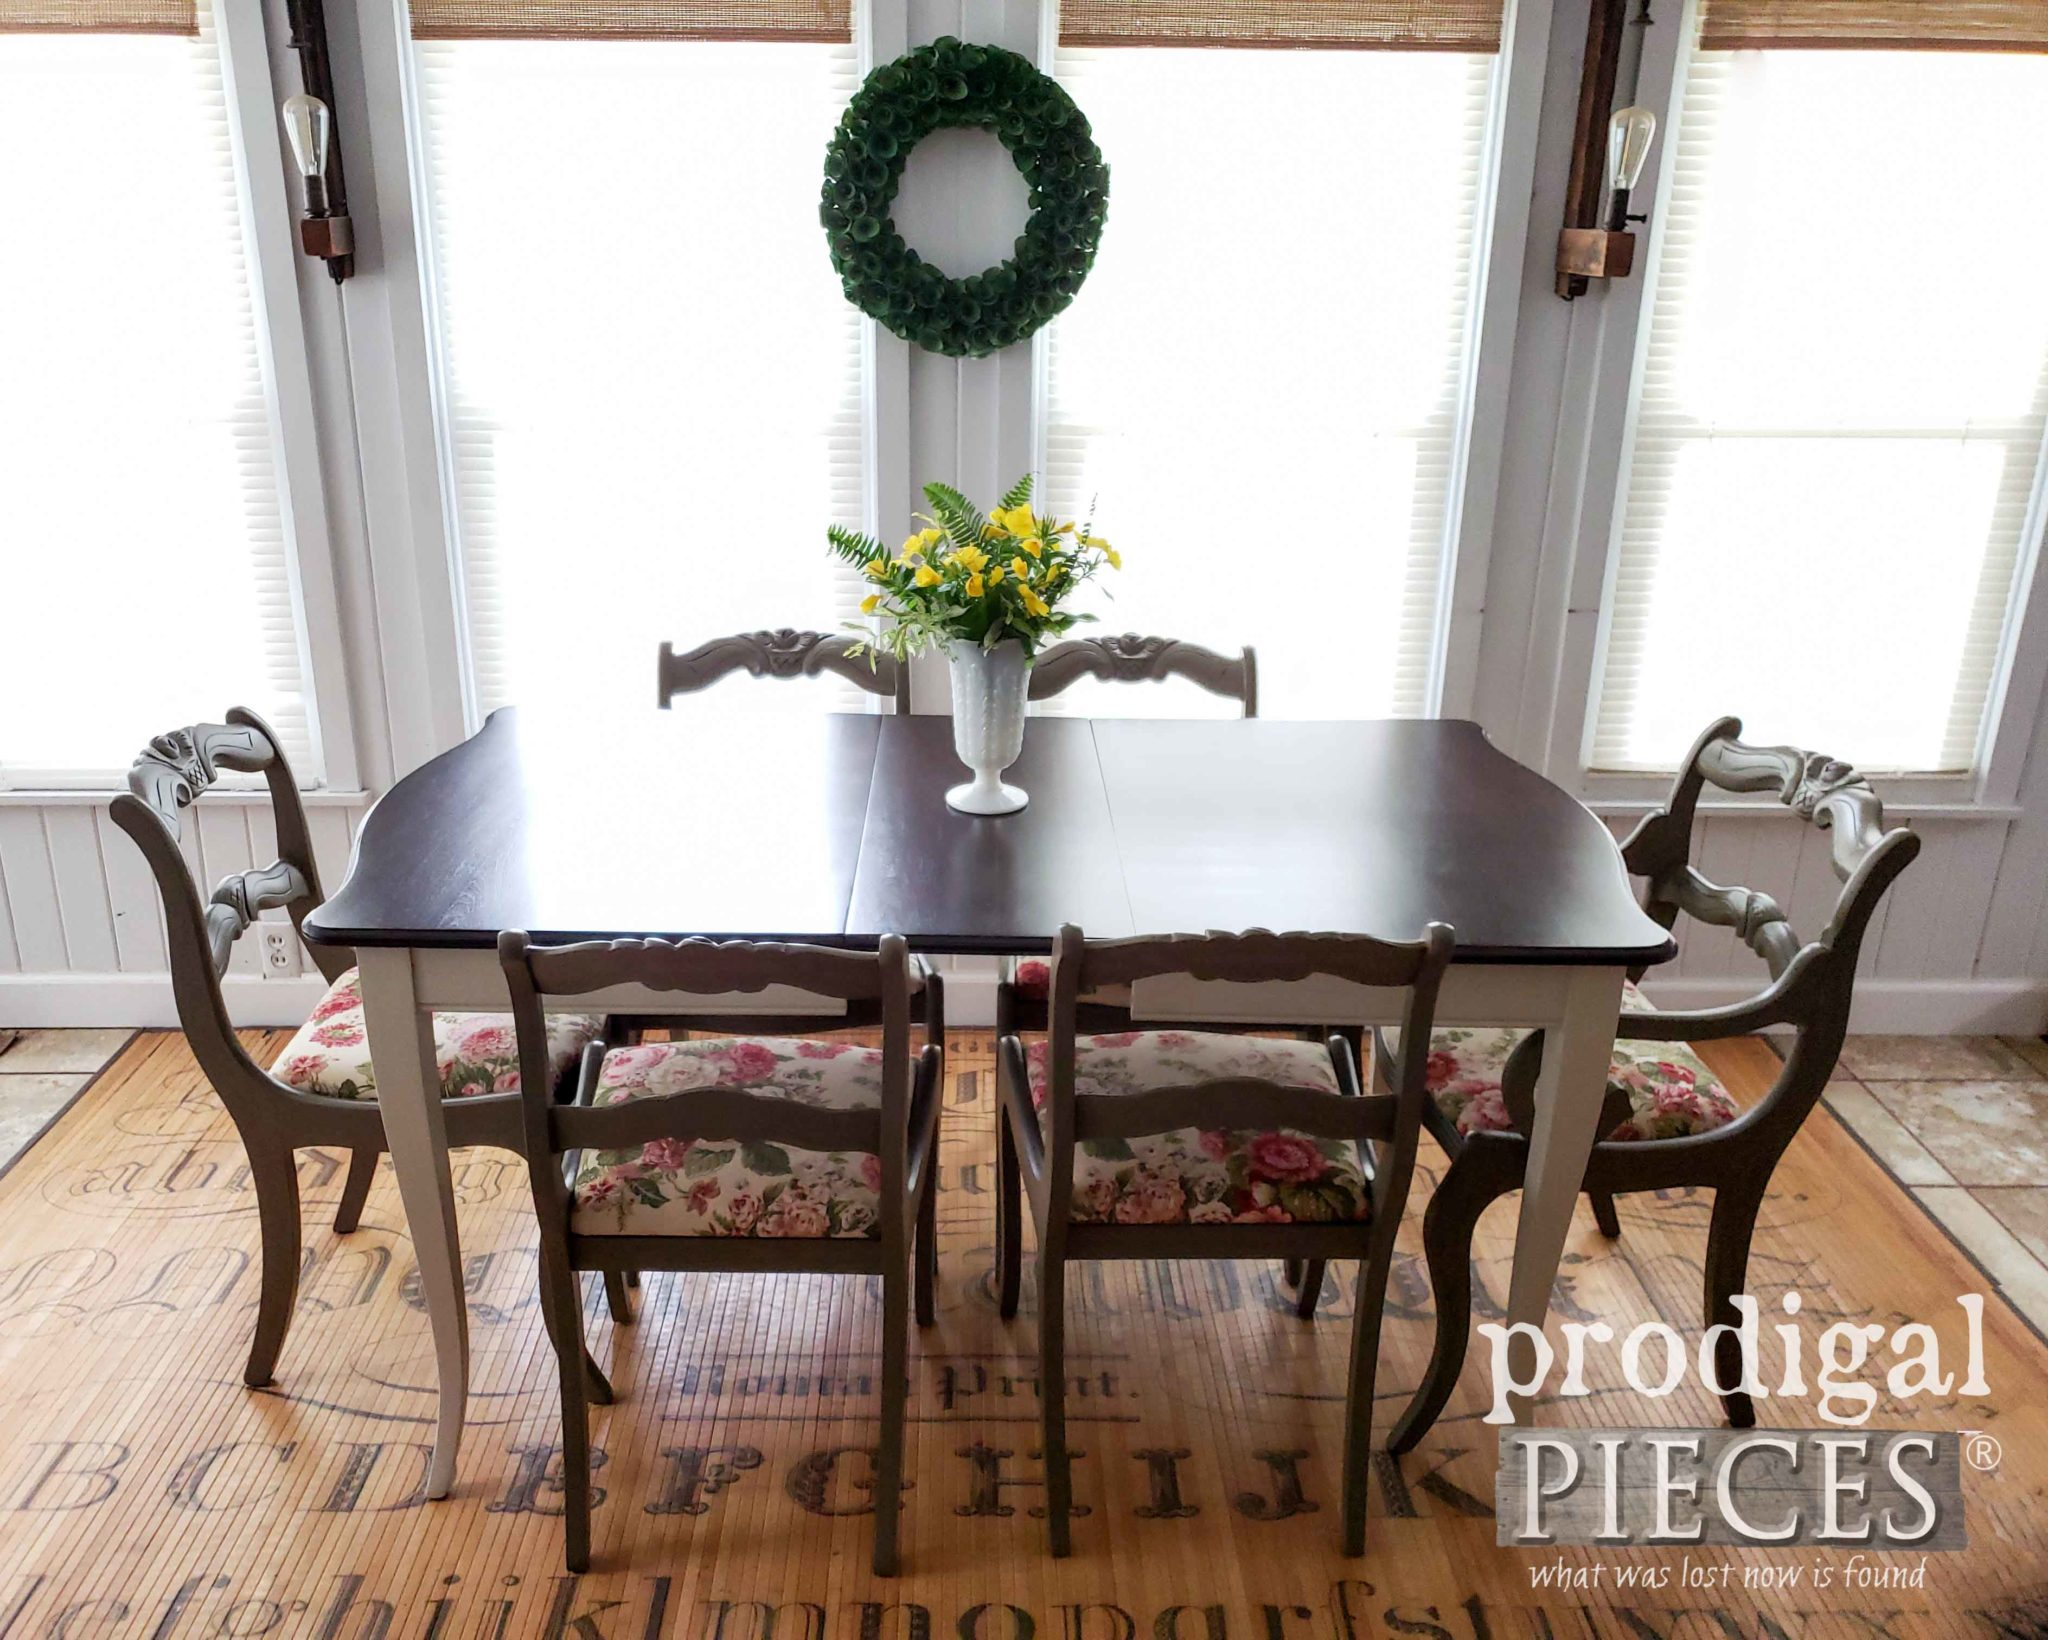 Vintage Dining Room Table And Chairs, Antique Dining Room Sets